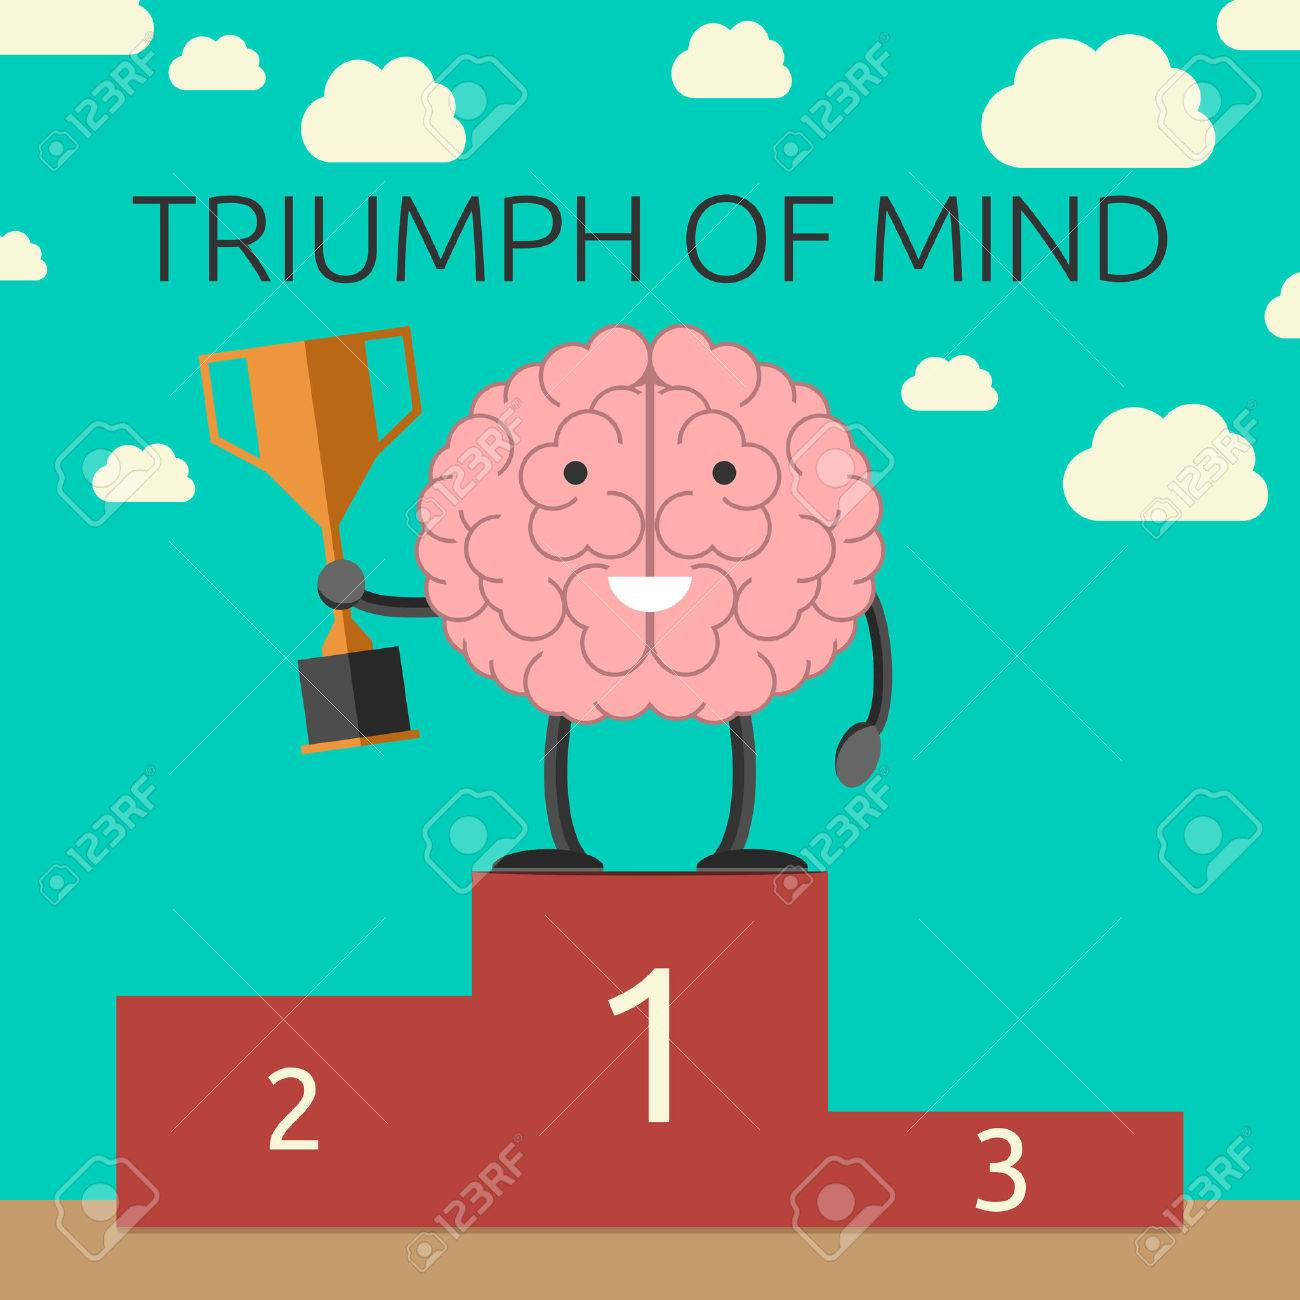 Brain character with winner cup on sports victory podium. Strong mind, success, rational thinking, will power concept. EPS 10 vector illustration, no transparency - 40092480